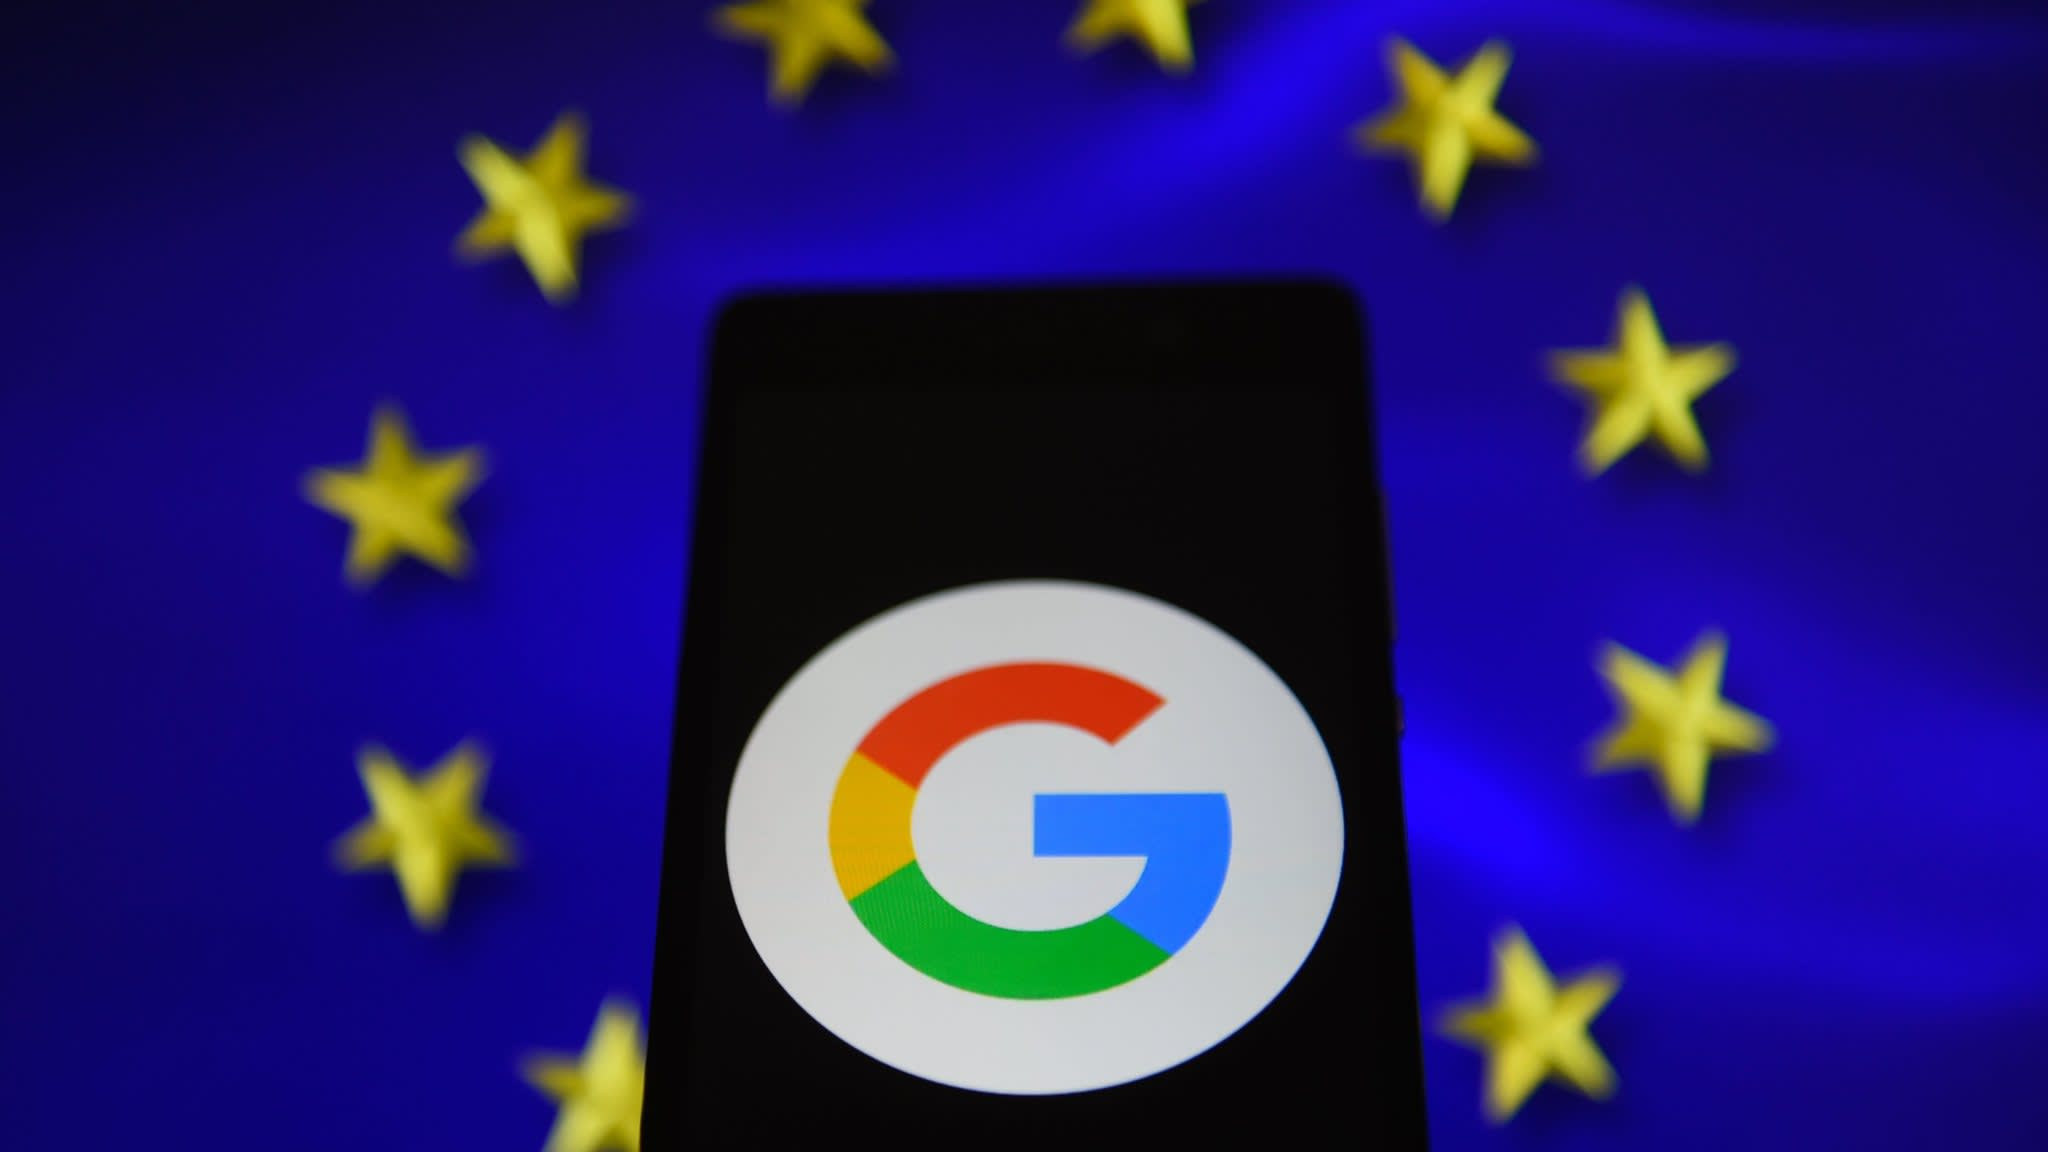 Google poised to appeal against EU's €4bn Android antitrust fine